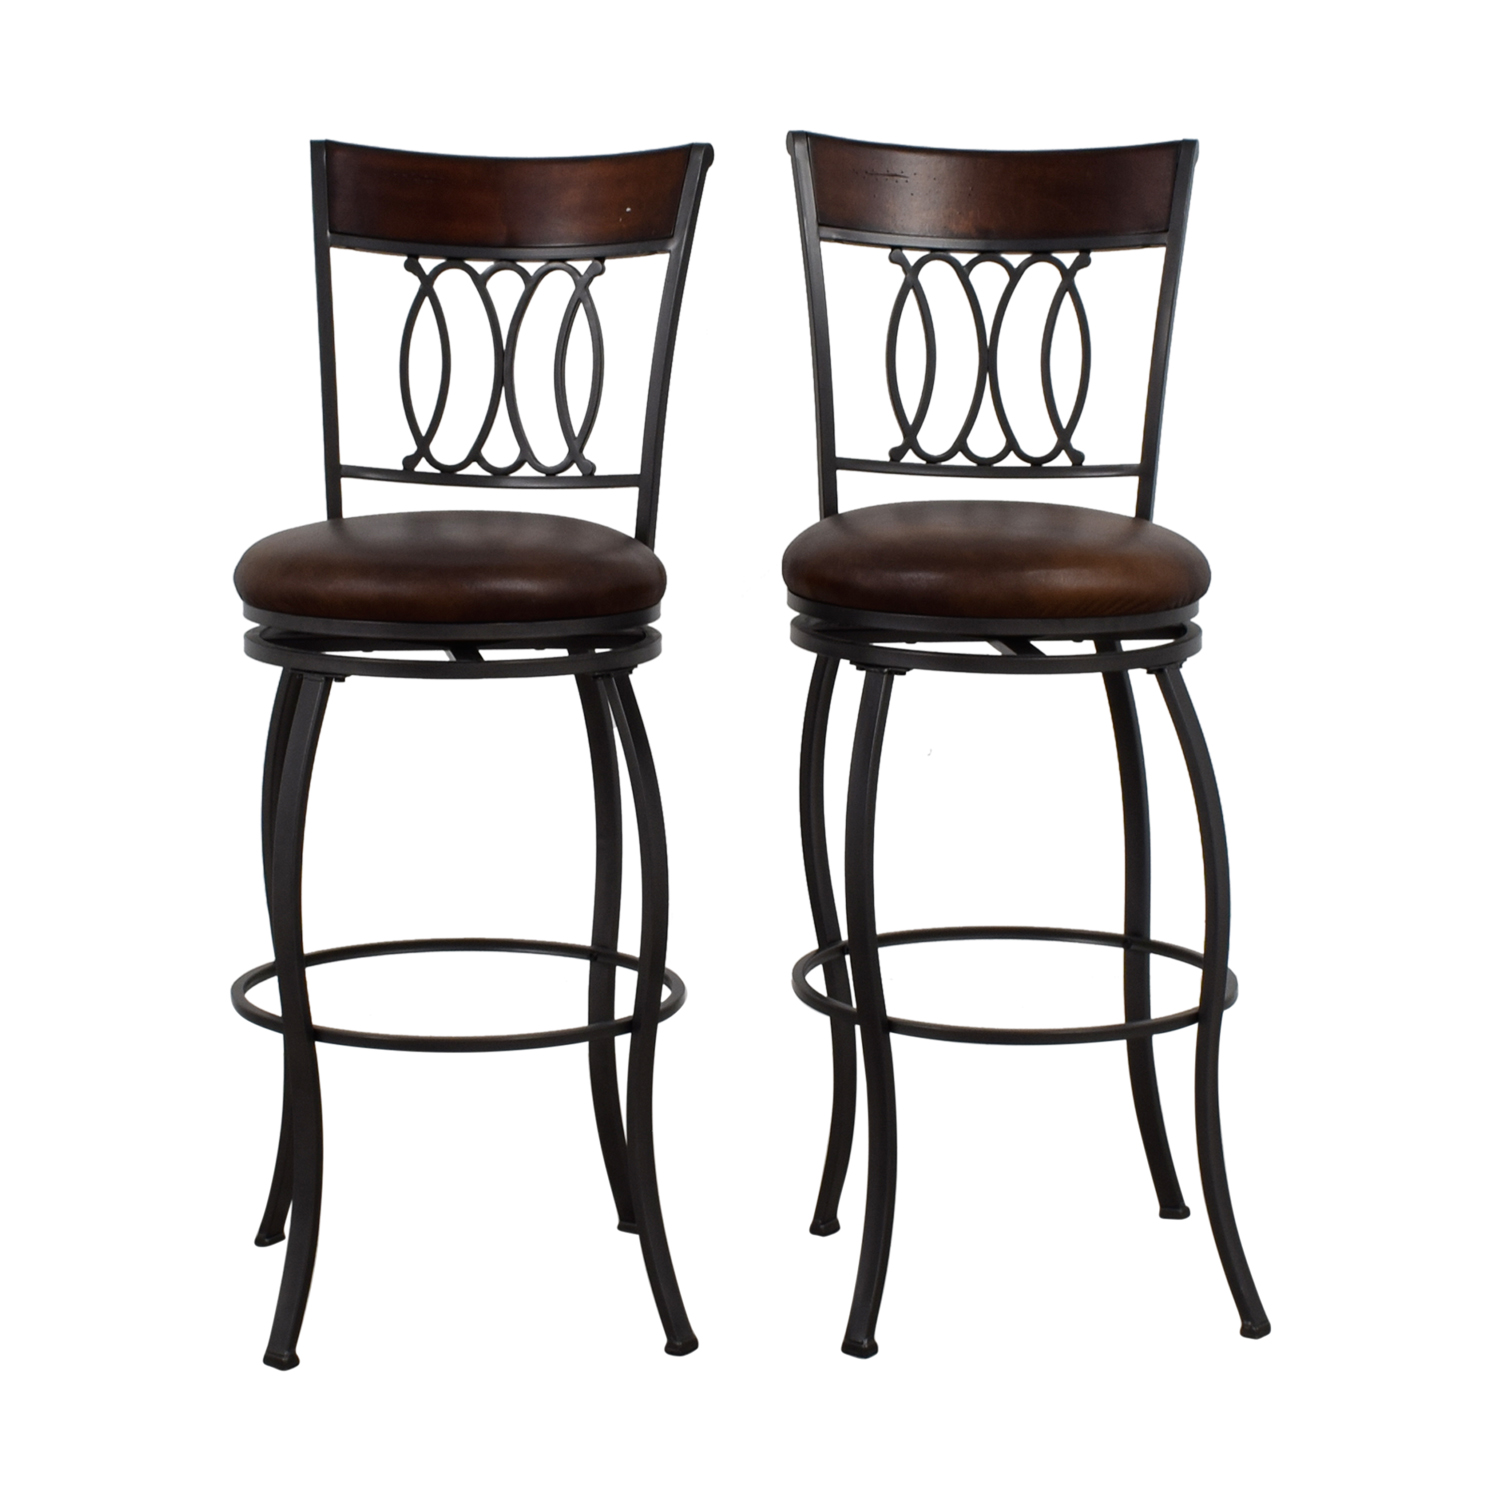 Bobs Furniture Bobs Furniture Brown Swivel Bar Stools Stools